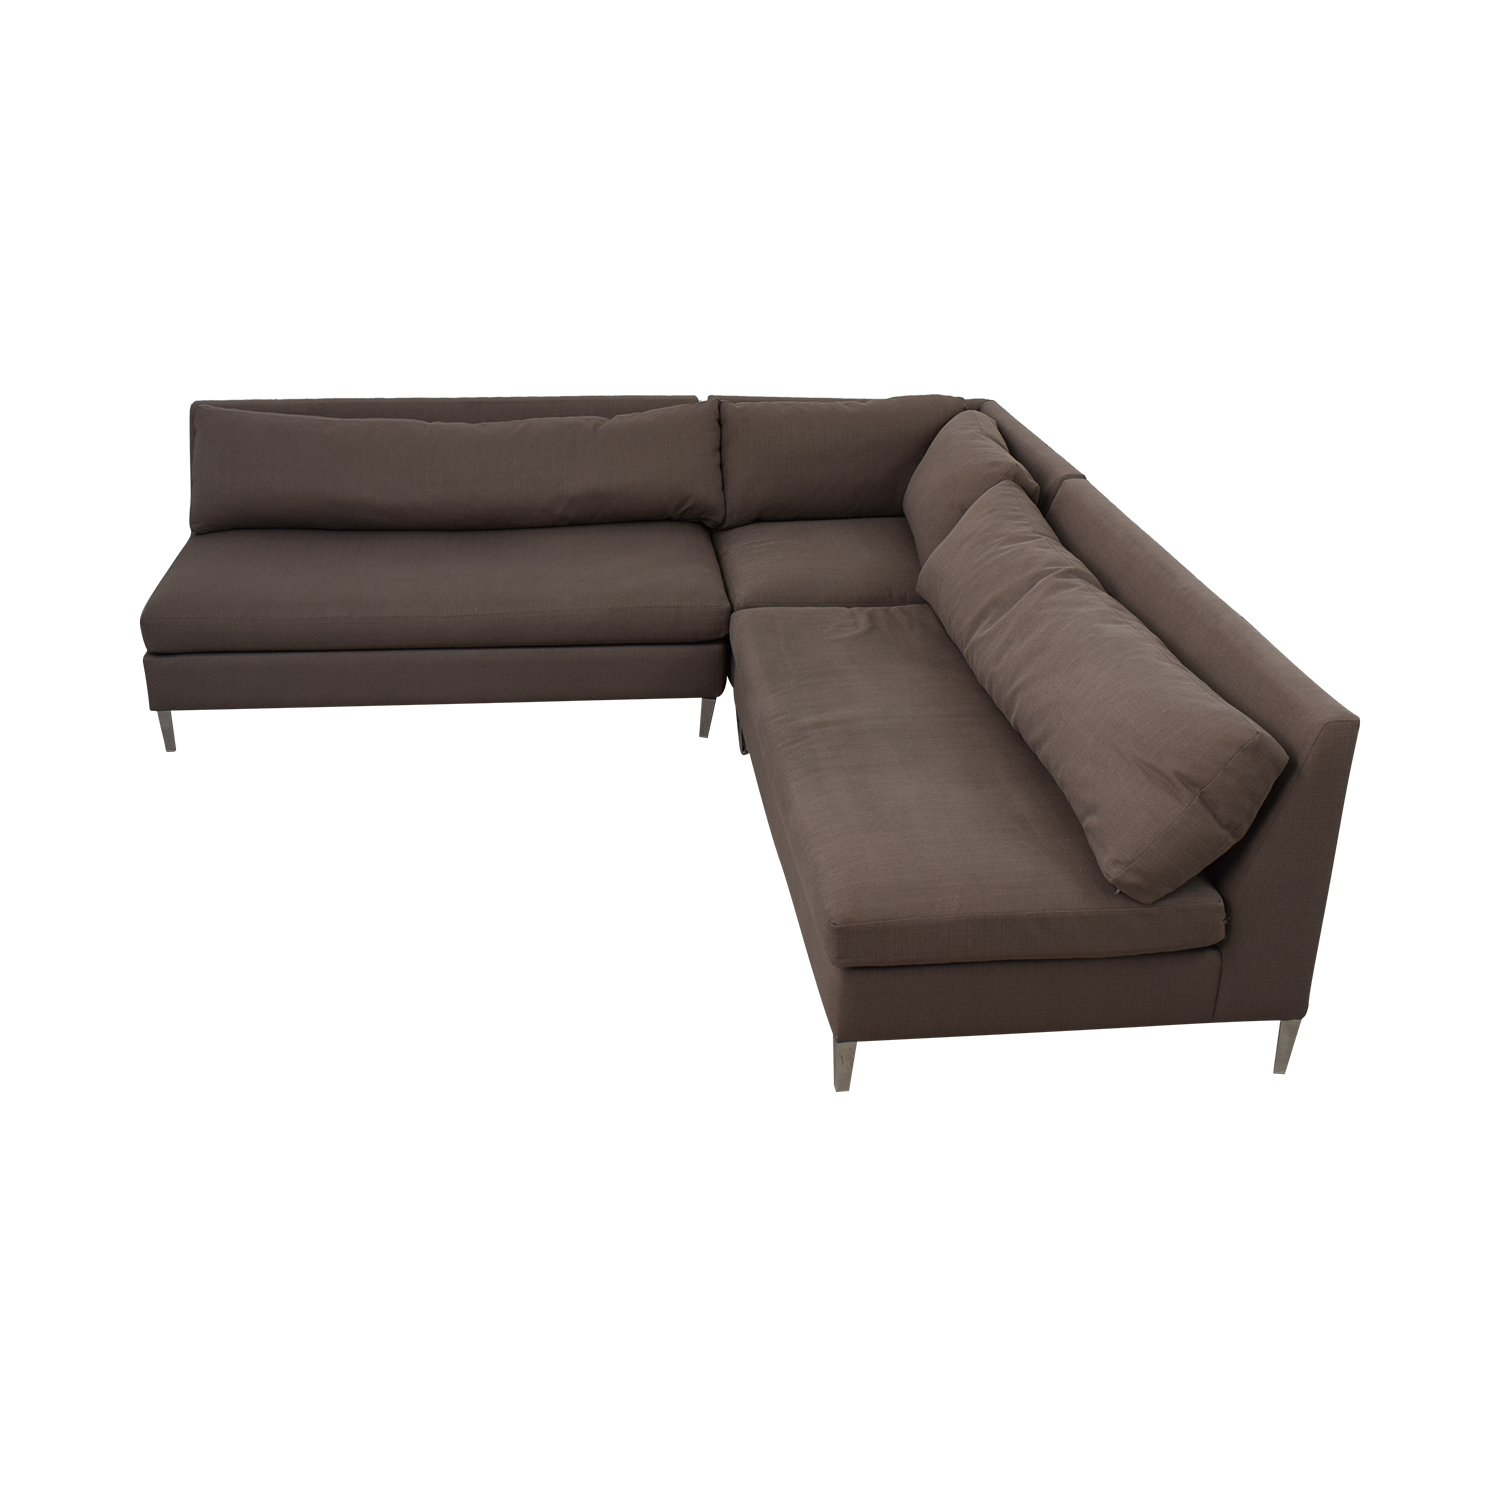 CB2 CB2 Cielo Sofa Sectional on sale